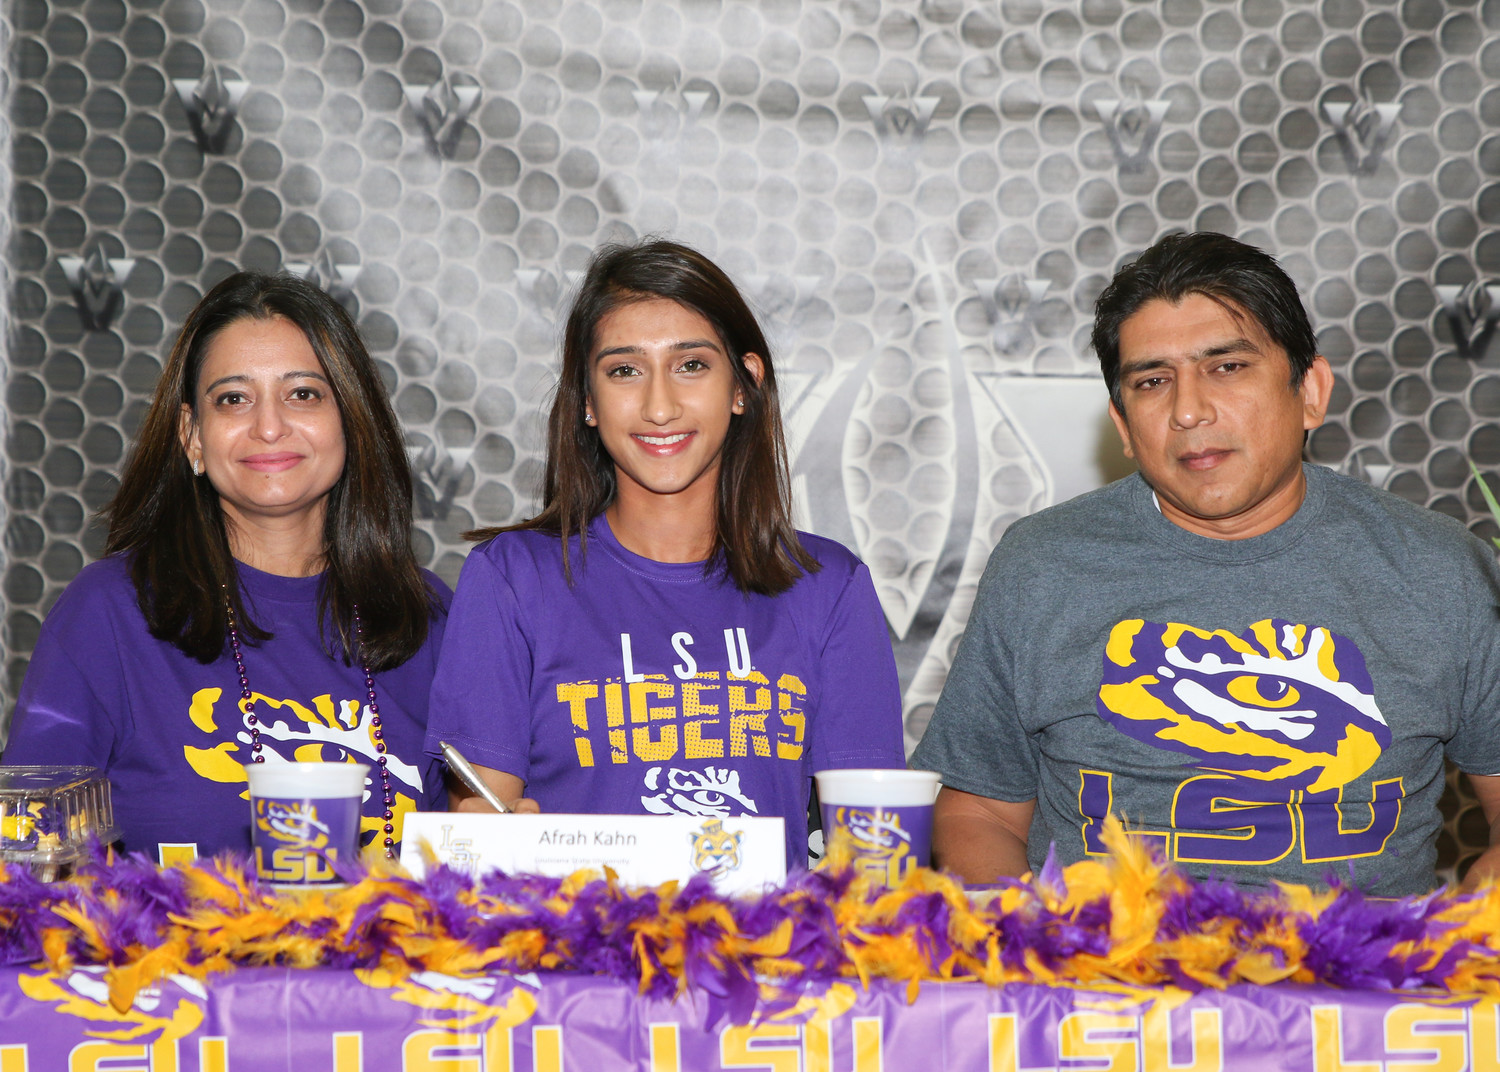 Afrah Khan signed a letter of intent to play soccer at Louisiana State University during a signing day ceremony at Vandegrift High School on February 7, 2018.